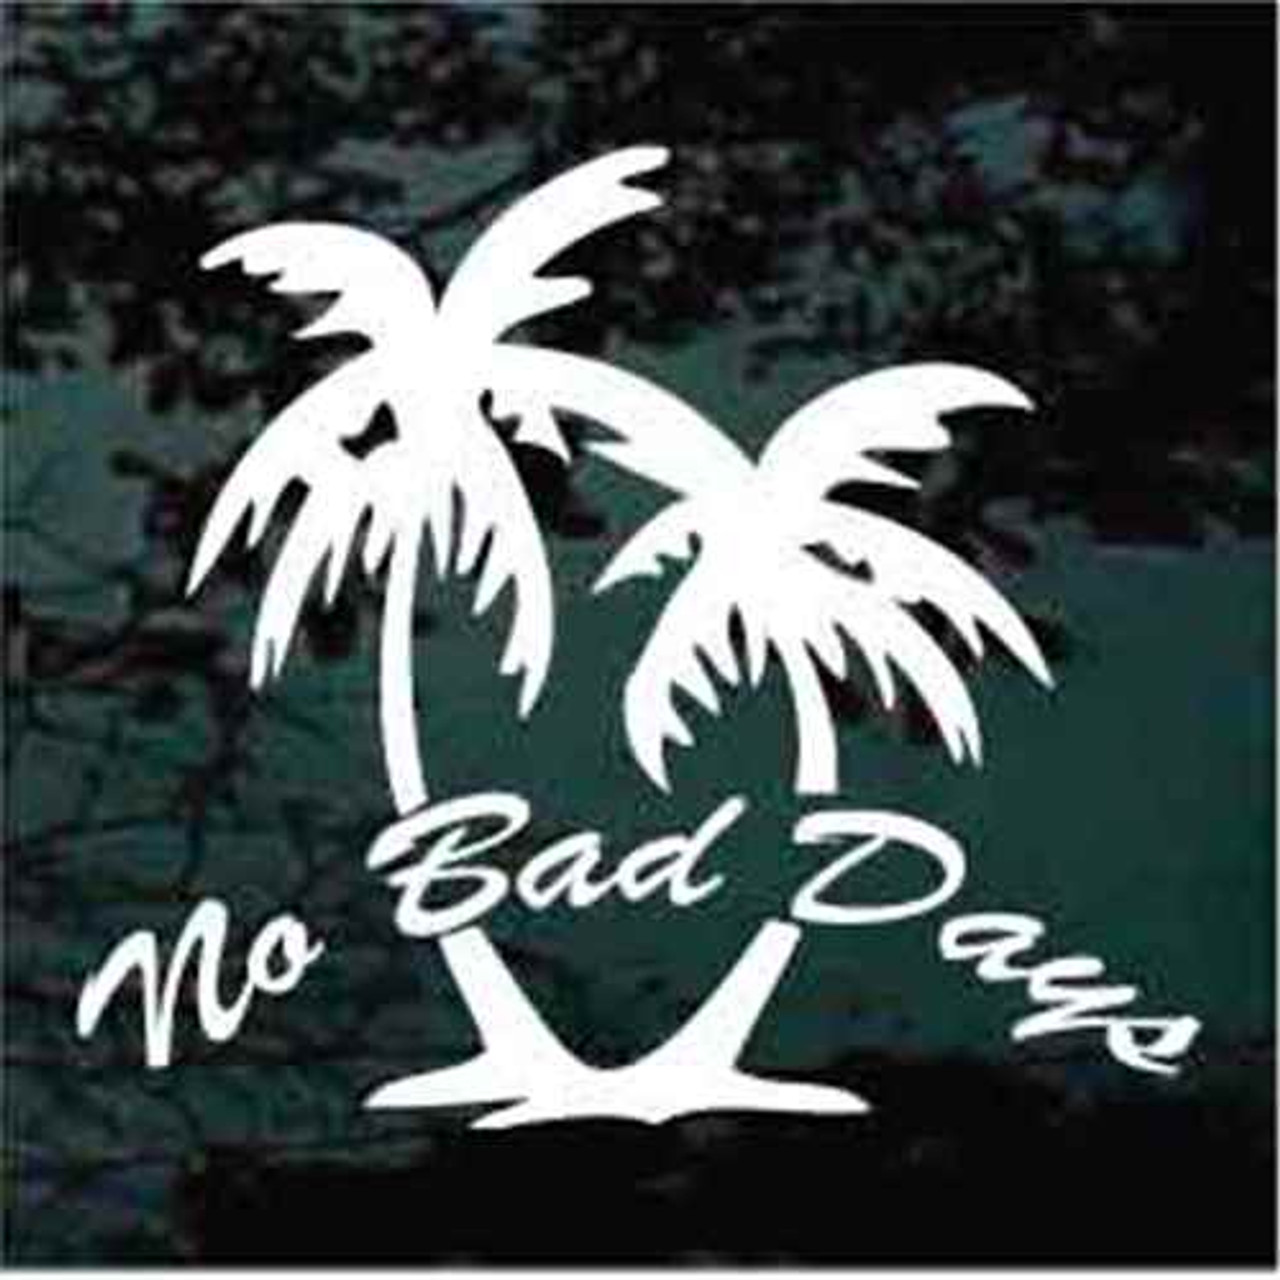 No Bad Days Palm Trees Decals Car Window Stickers